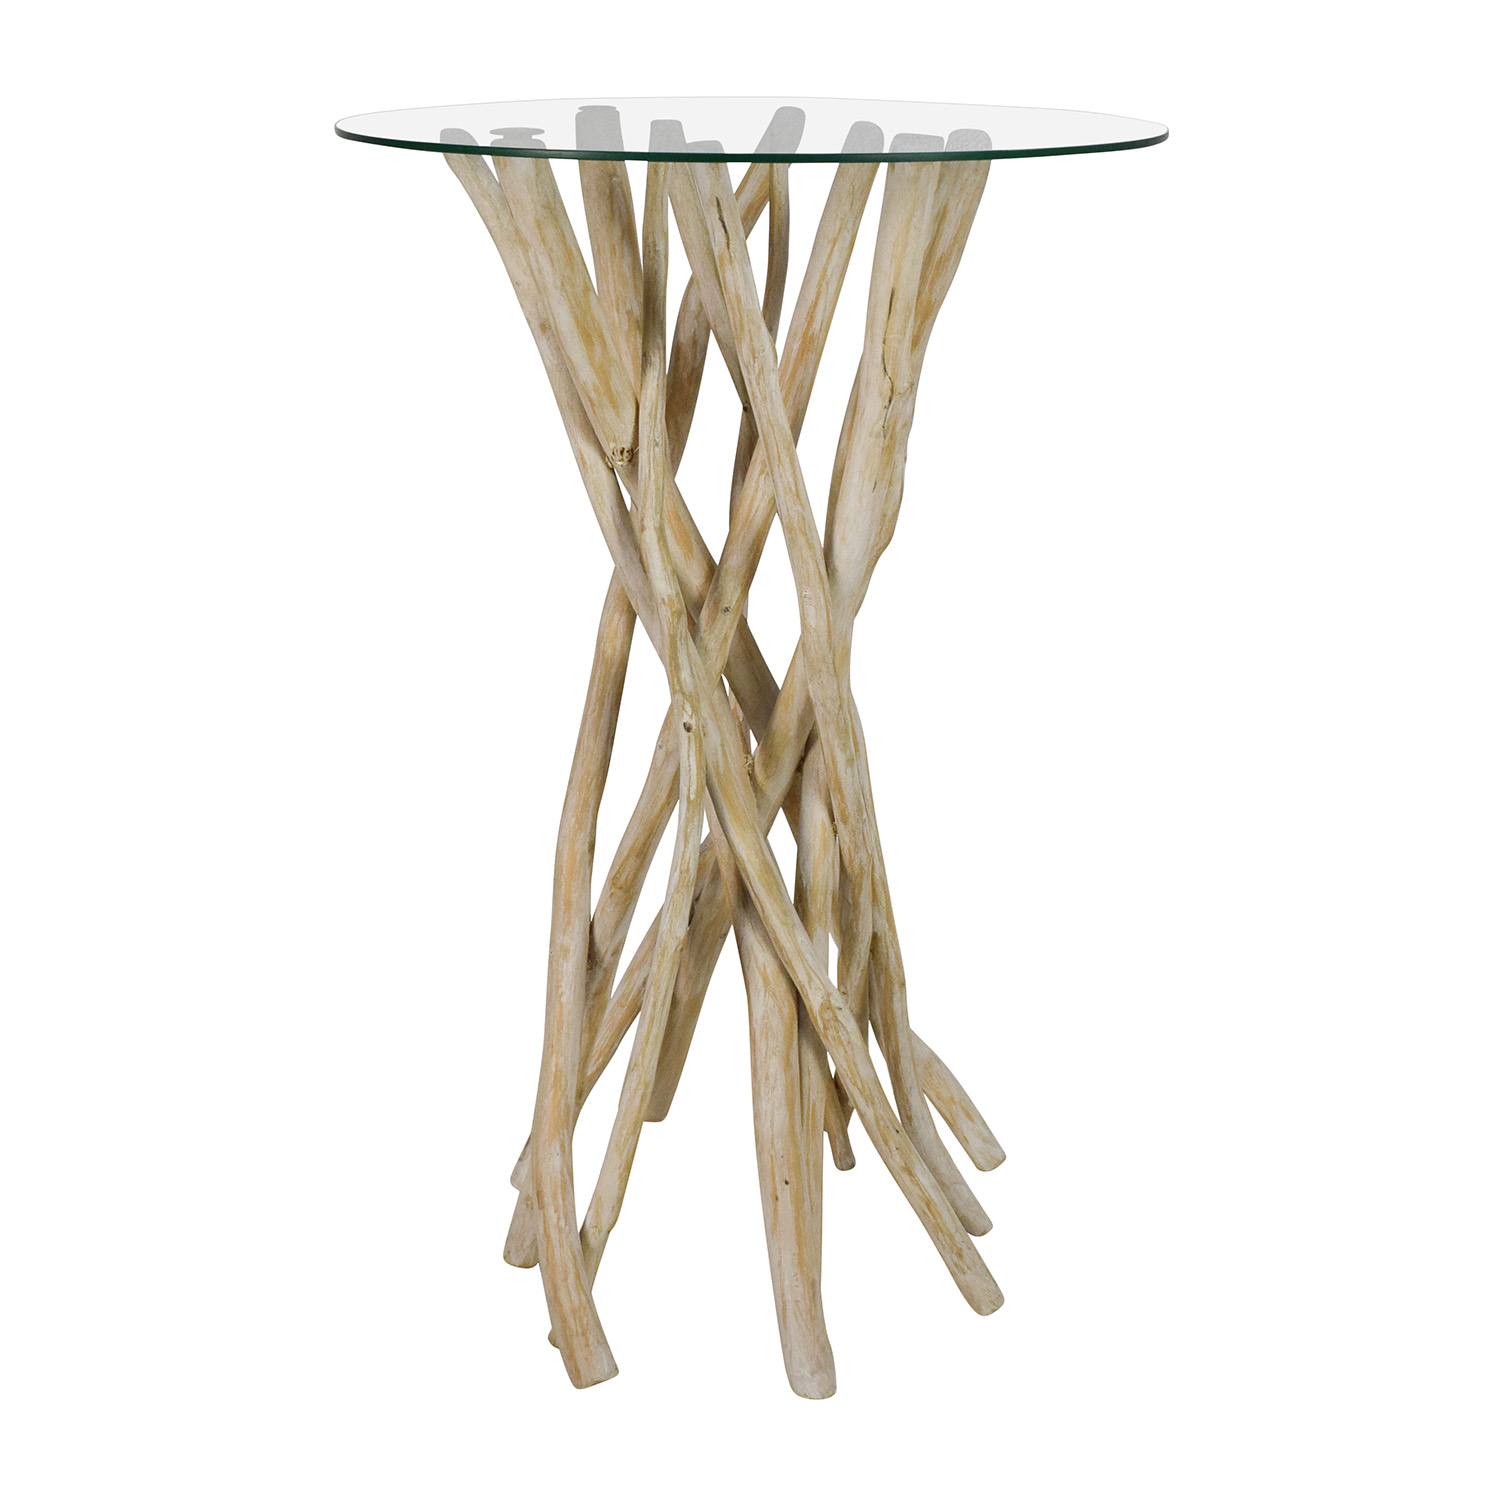 Nadeau Nadeau Rustic Wood Handcrafted Tall Glass Top End Table coupon